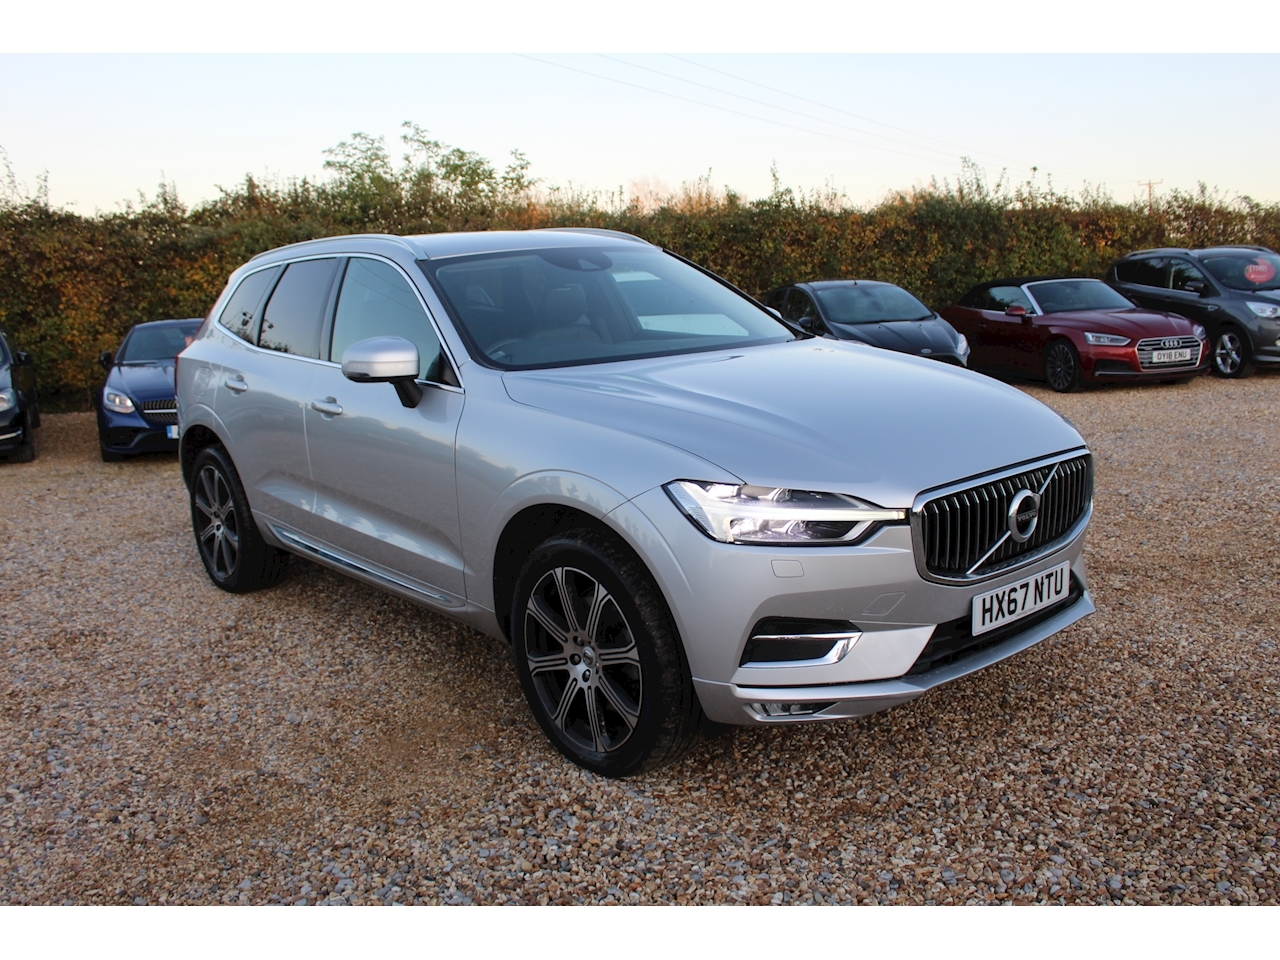 Volvo XC60 Inscription SUV 2.0 Auto Petrol